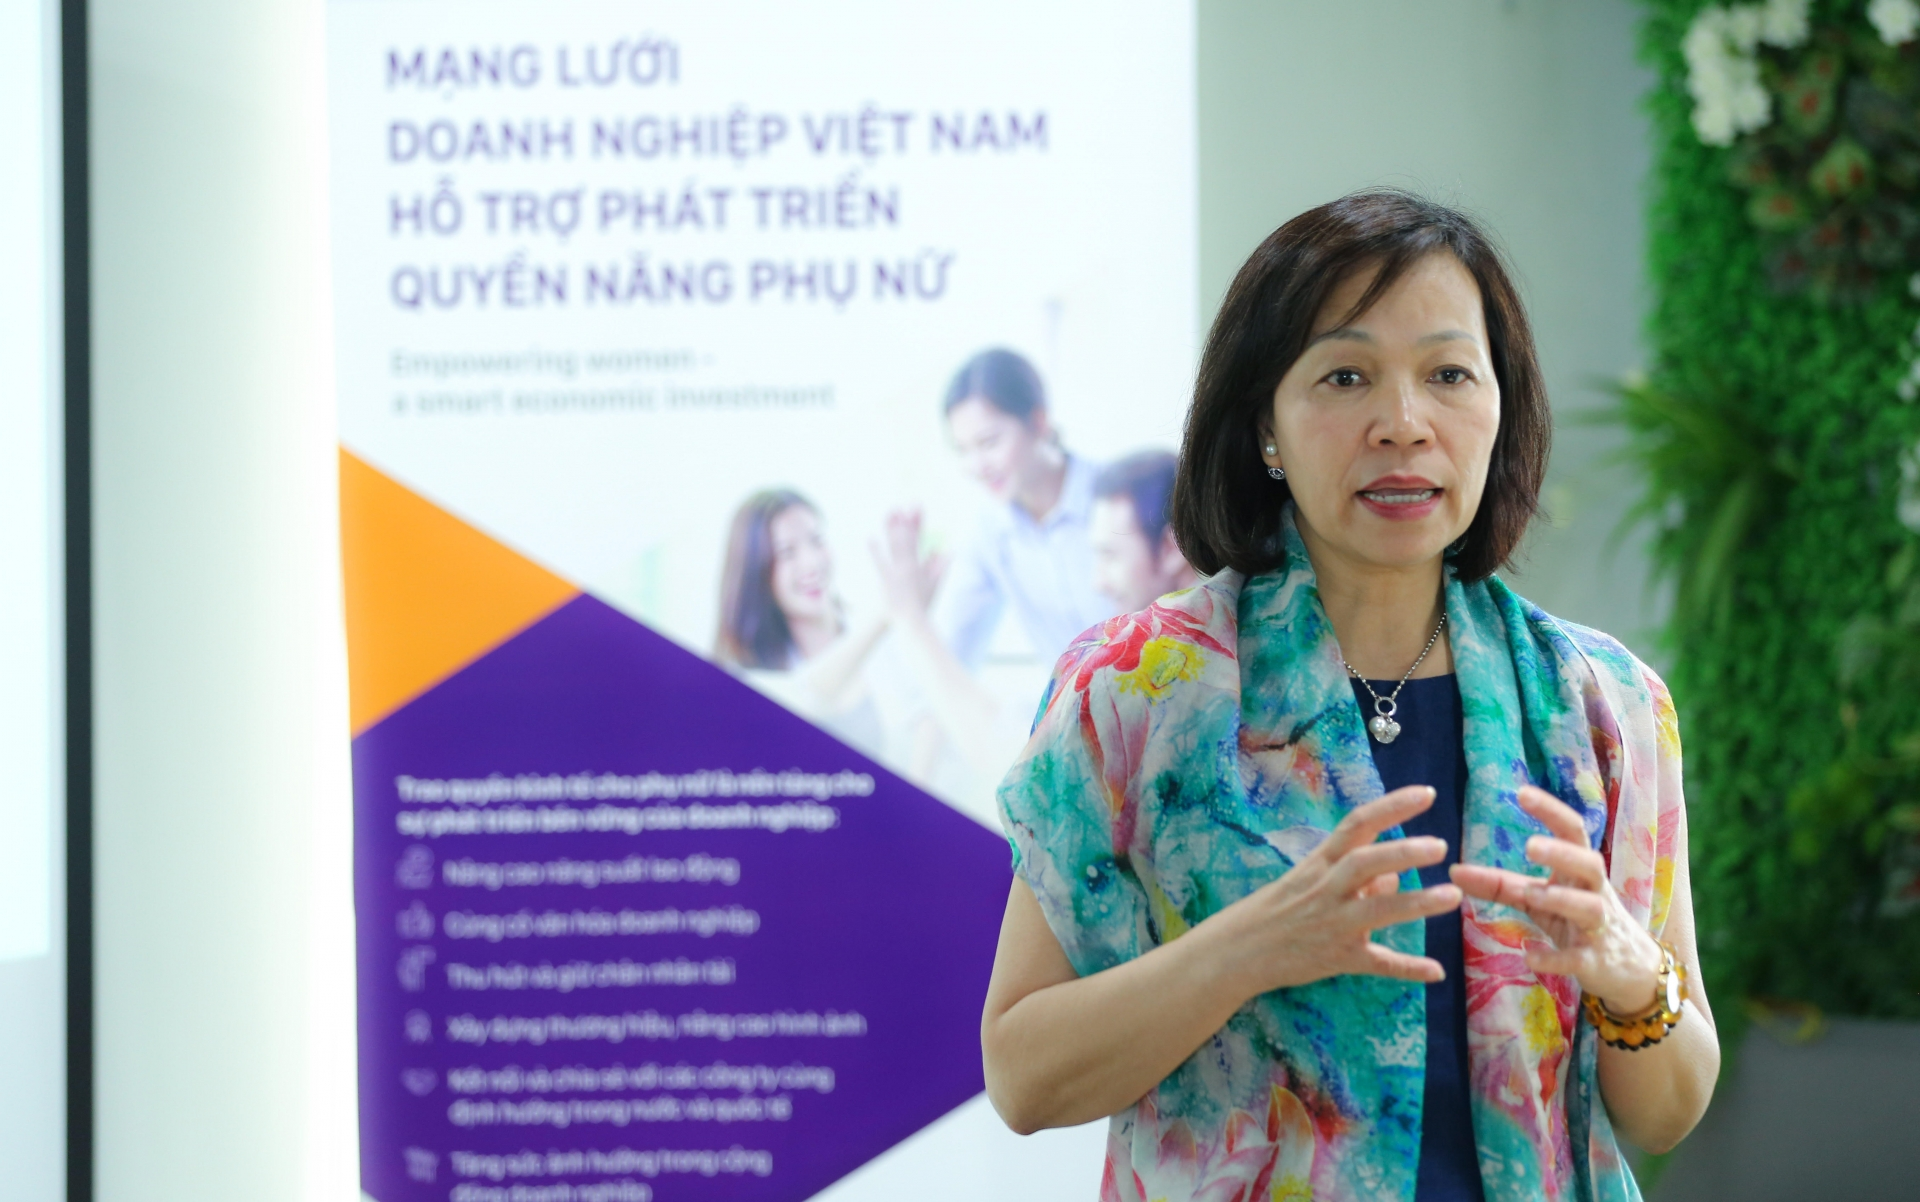 Global gender equality certificate improves competitiveness of businesses